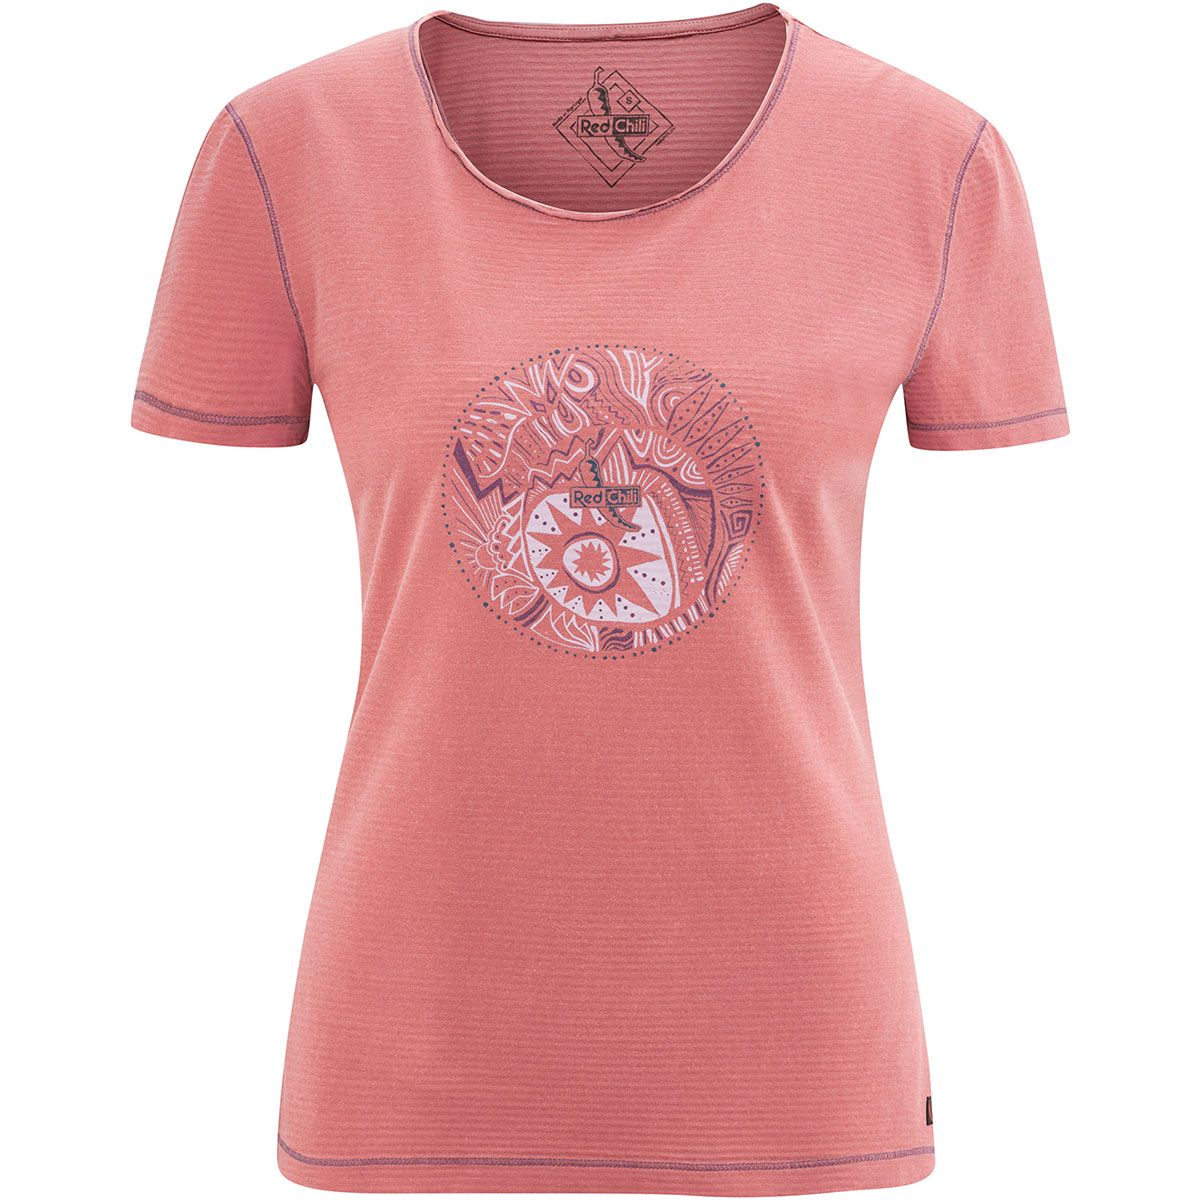 Red Chili Damen Emily T-Shirt (Größe M, Rot) | T-Shirts Freizeit > Damen